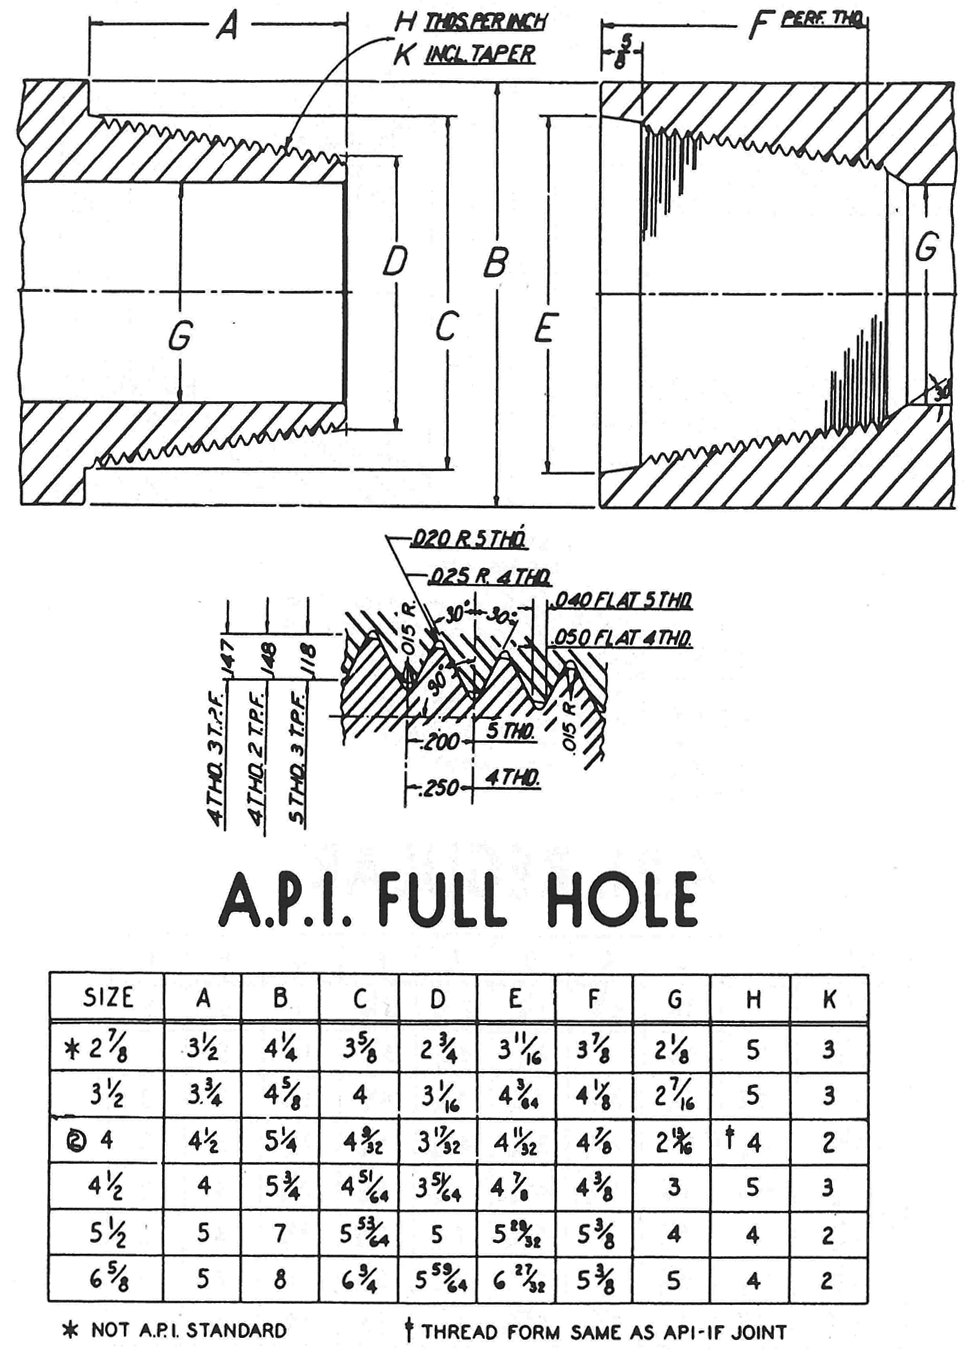 API Full Hole